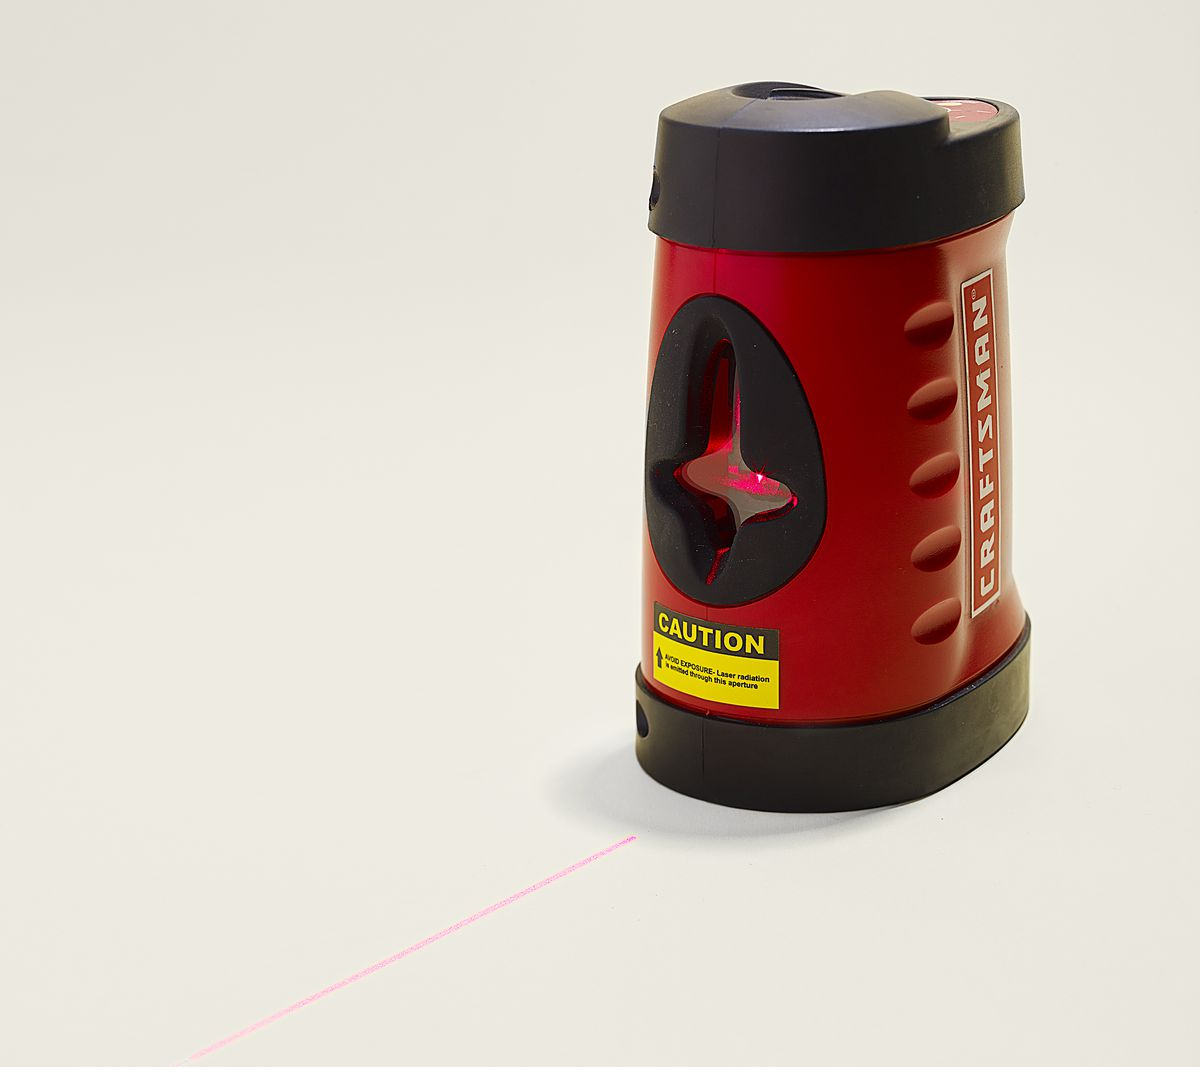 A laser level that works well for tile and floor because the light comes from the side of the device at a 120 degree angle.